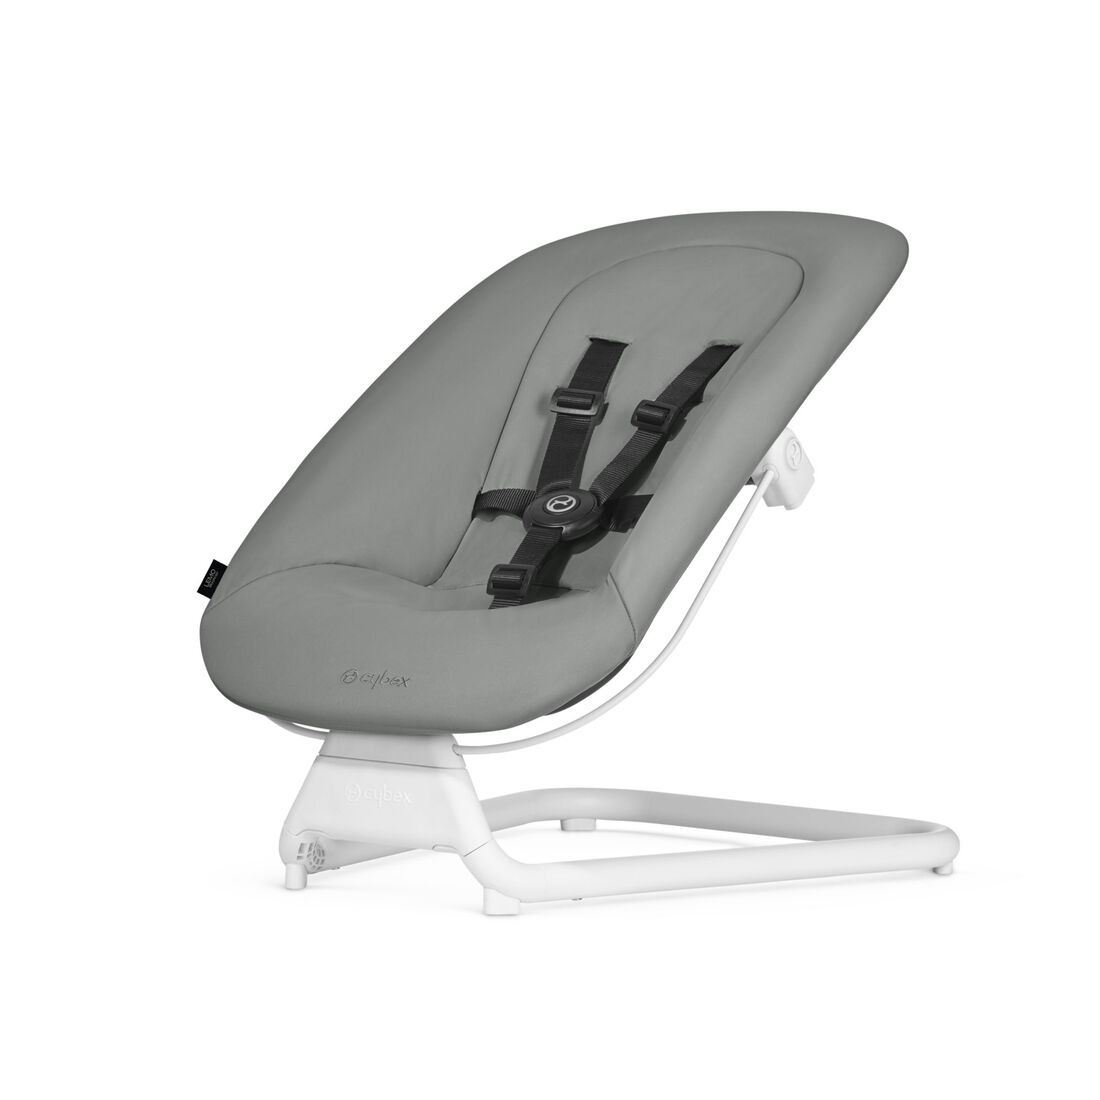 CYBEX Lemo Bouncer - Storm Grey in Storm Grey large Bild 1